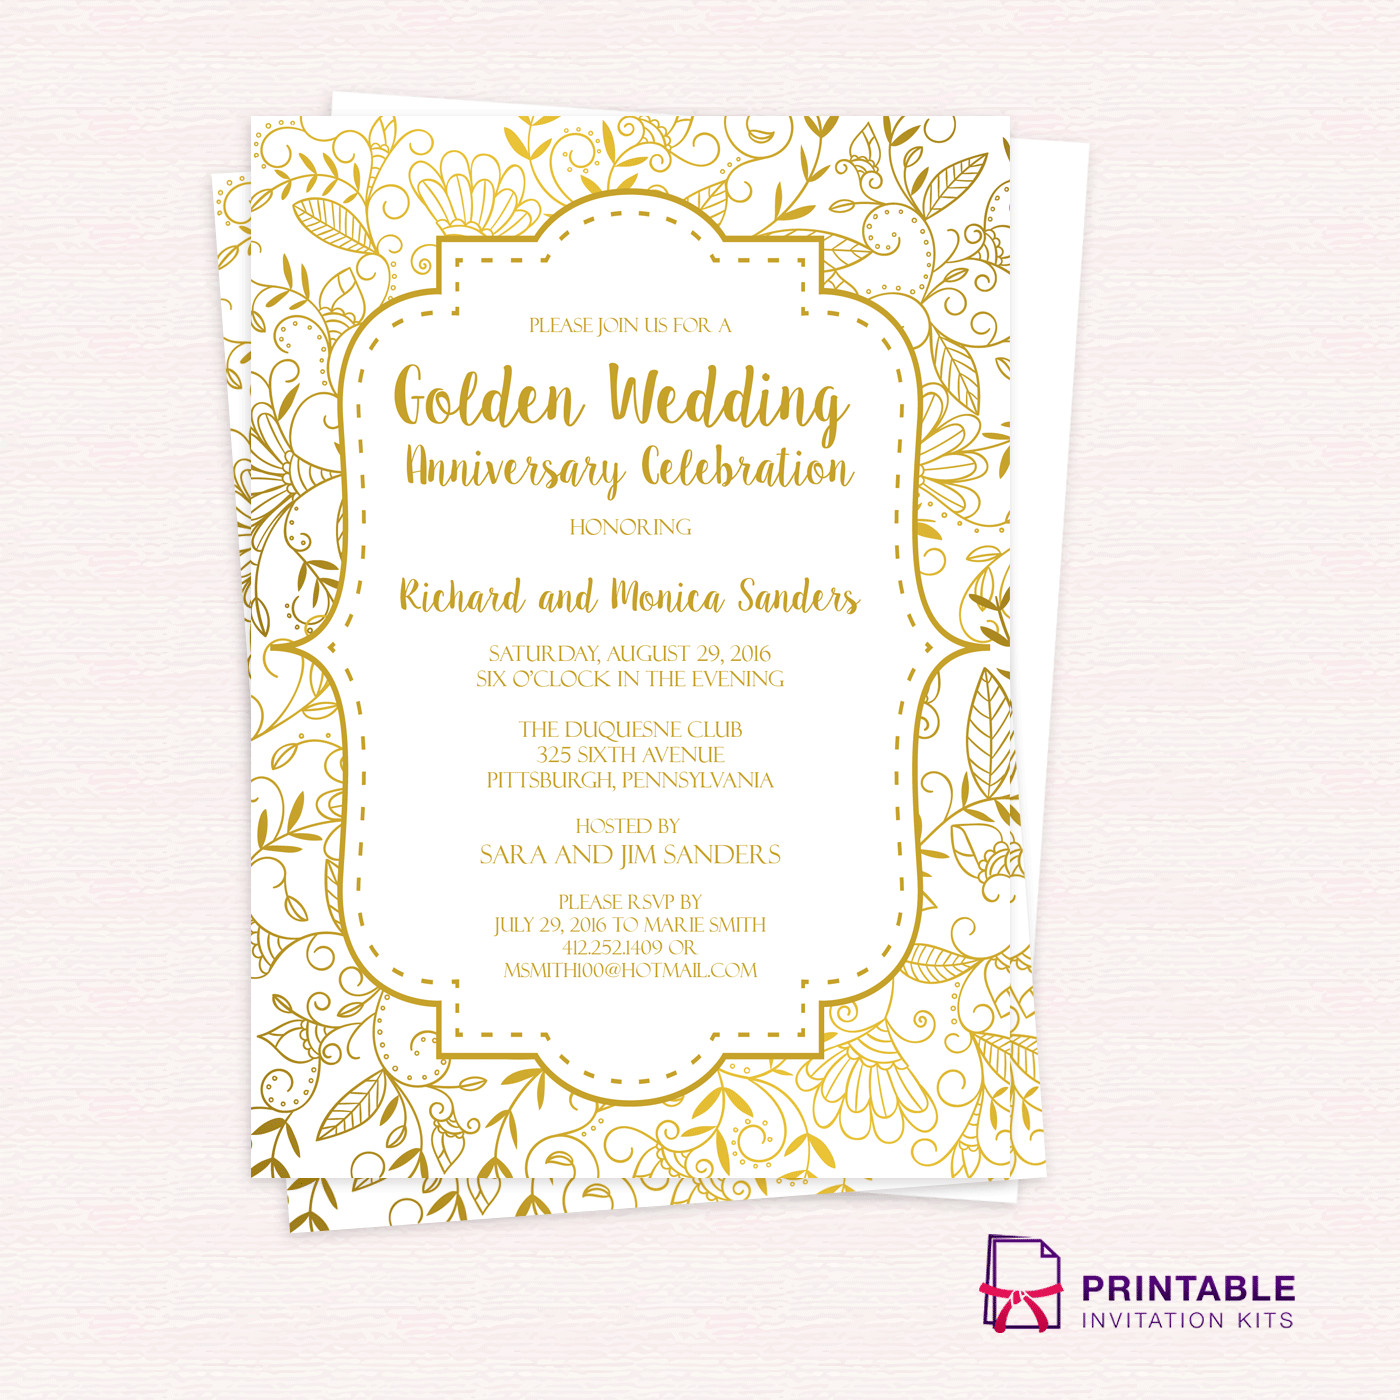 50th Anniversary Invitation Template Golden Wedding Anniversary Invitation Template